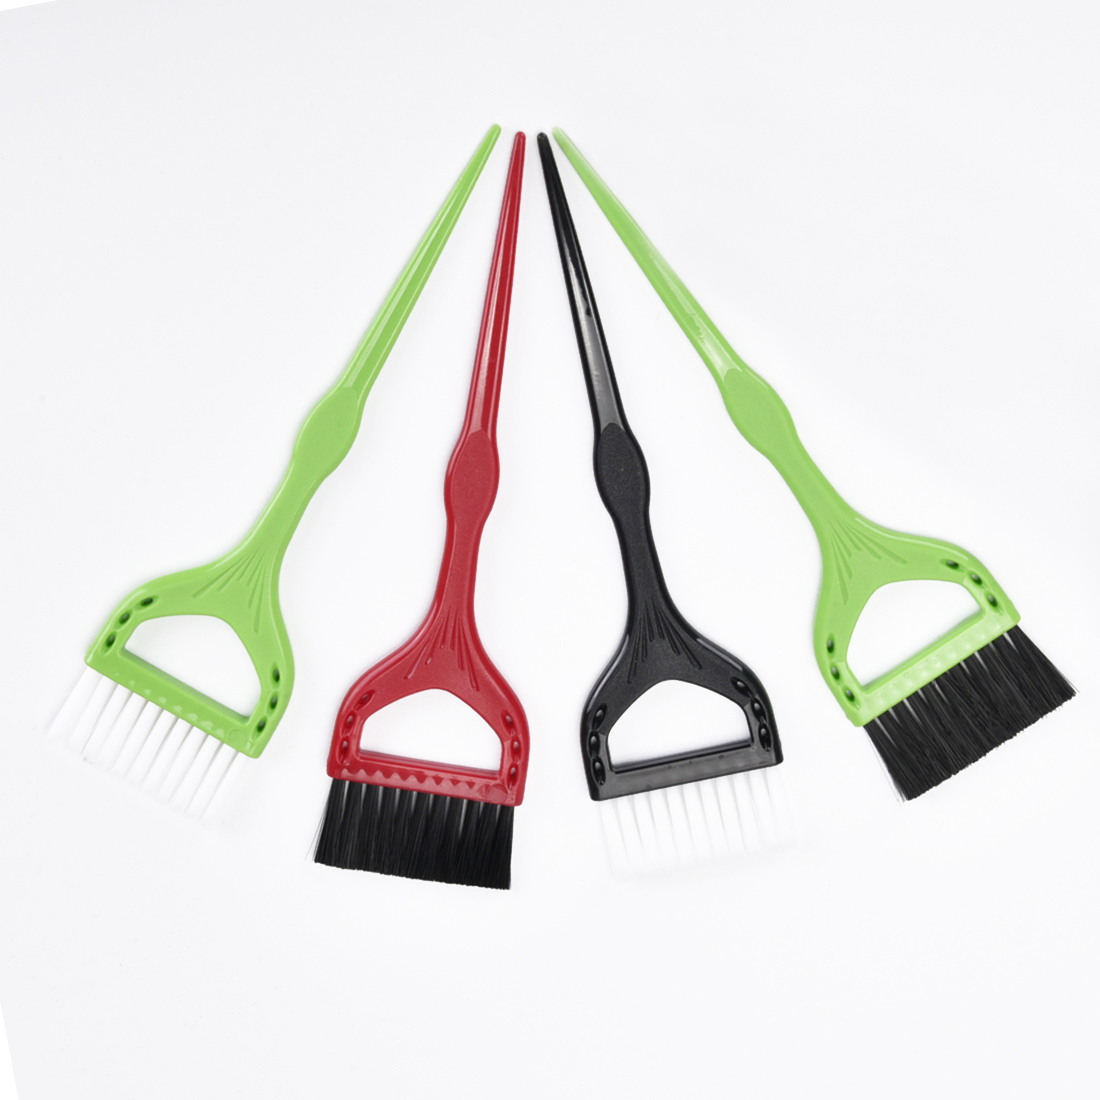 Plastic Dyeing Hall Hair Brushes Application Hall Hue Perm Lye Dye Coloring DIY Hairdressing Tool Combs Comb Tools